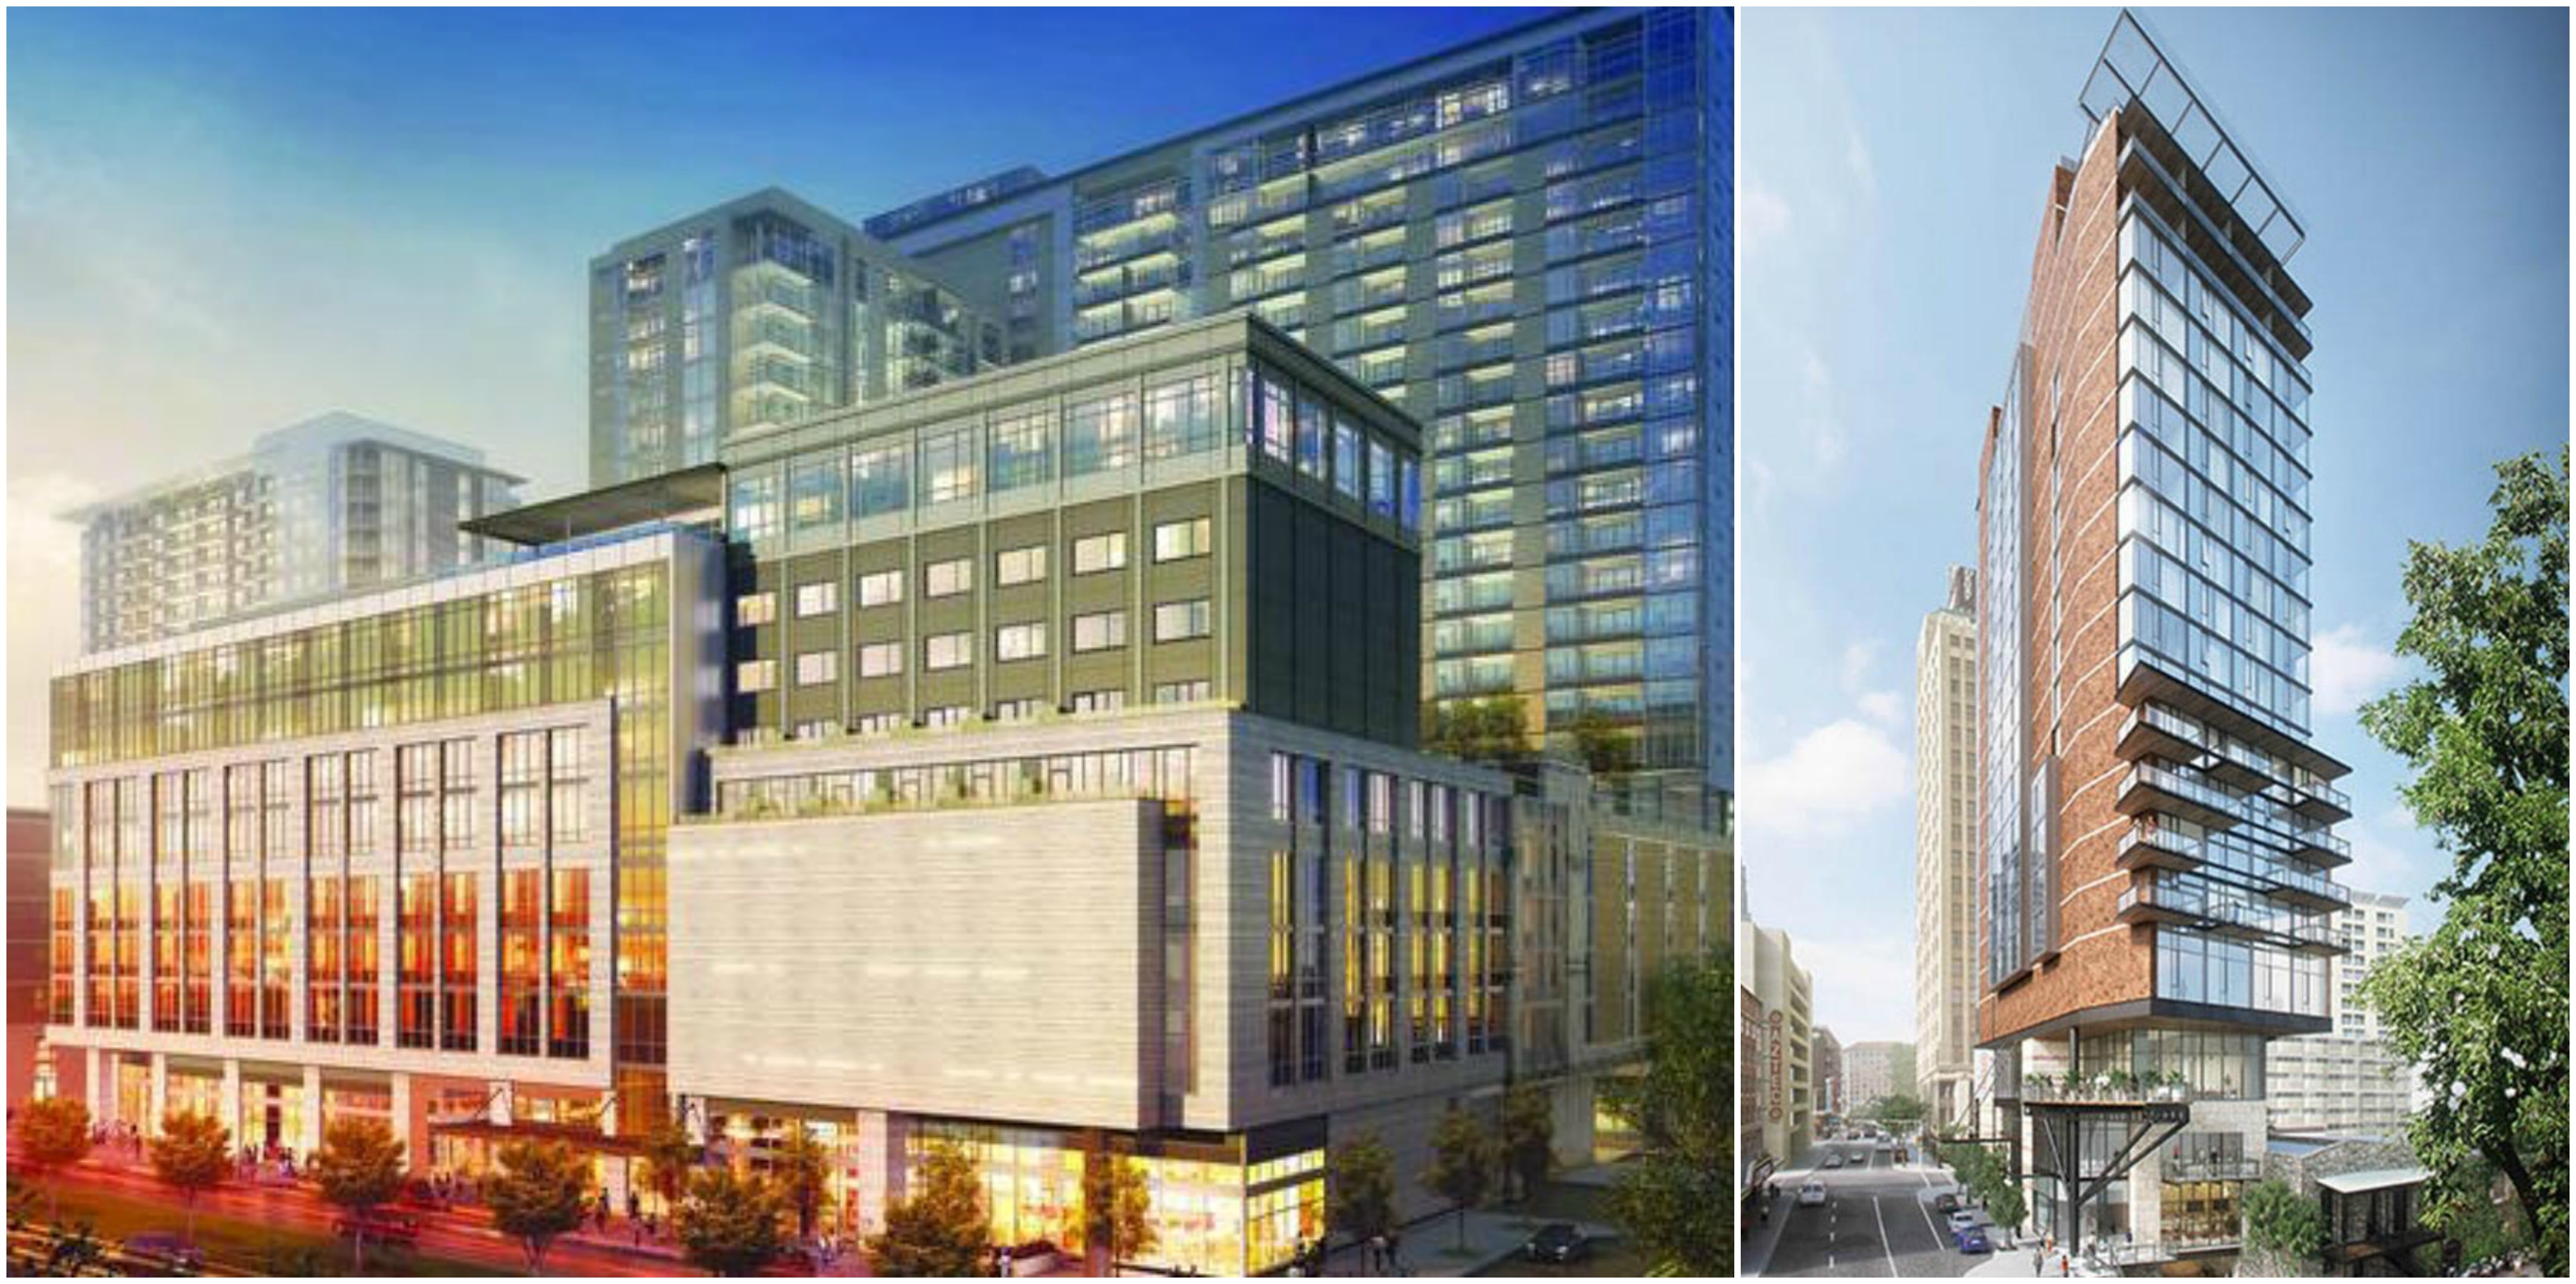 Canopy By Hilton Boutique Hotel Headed To West Sixth